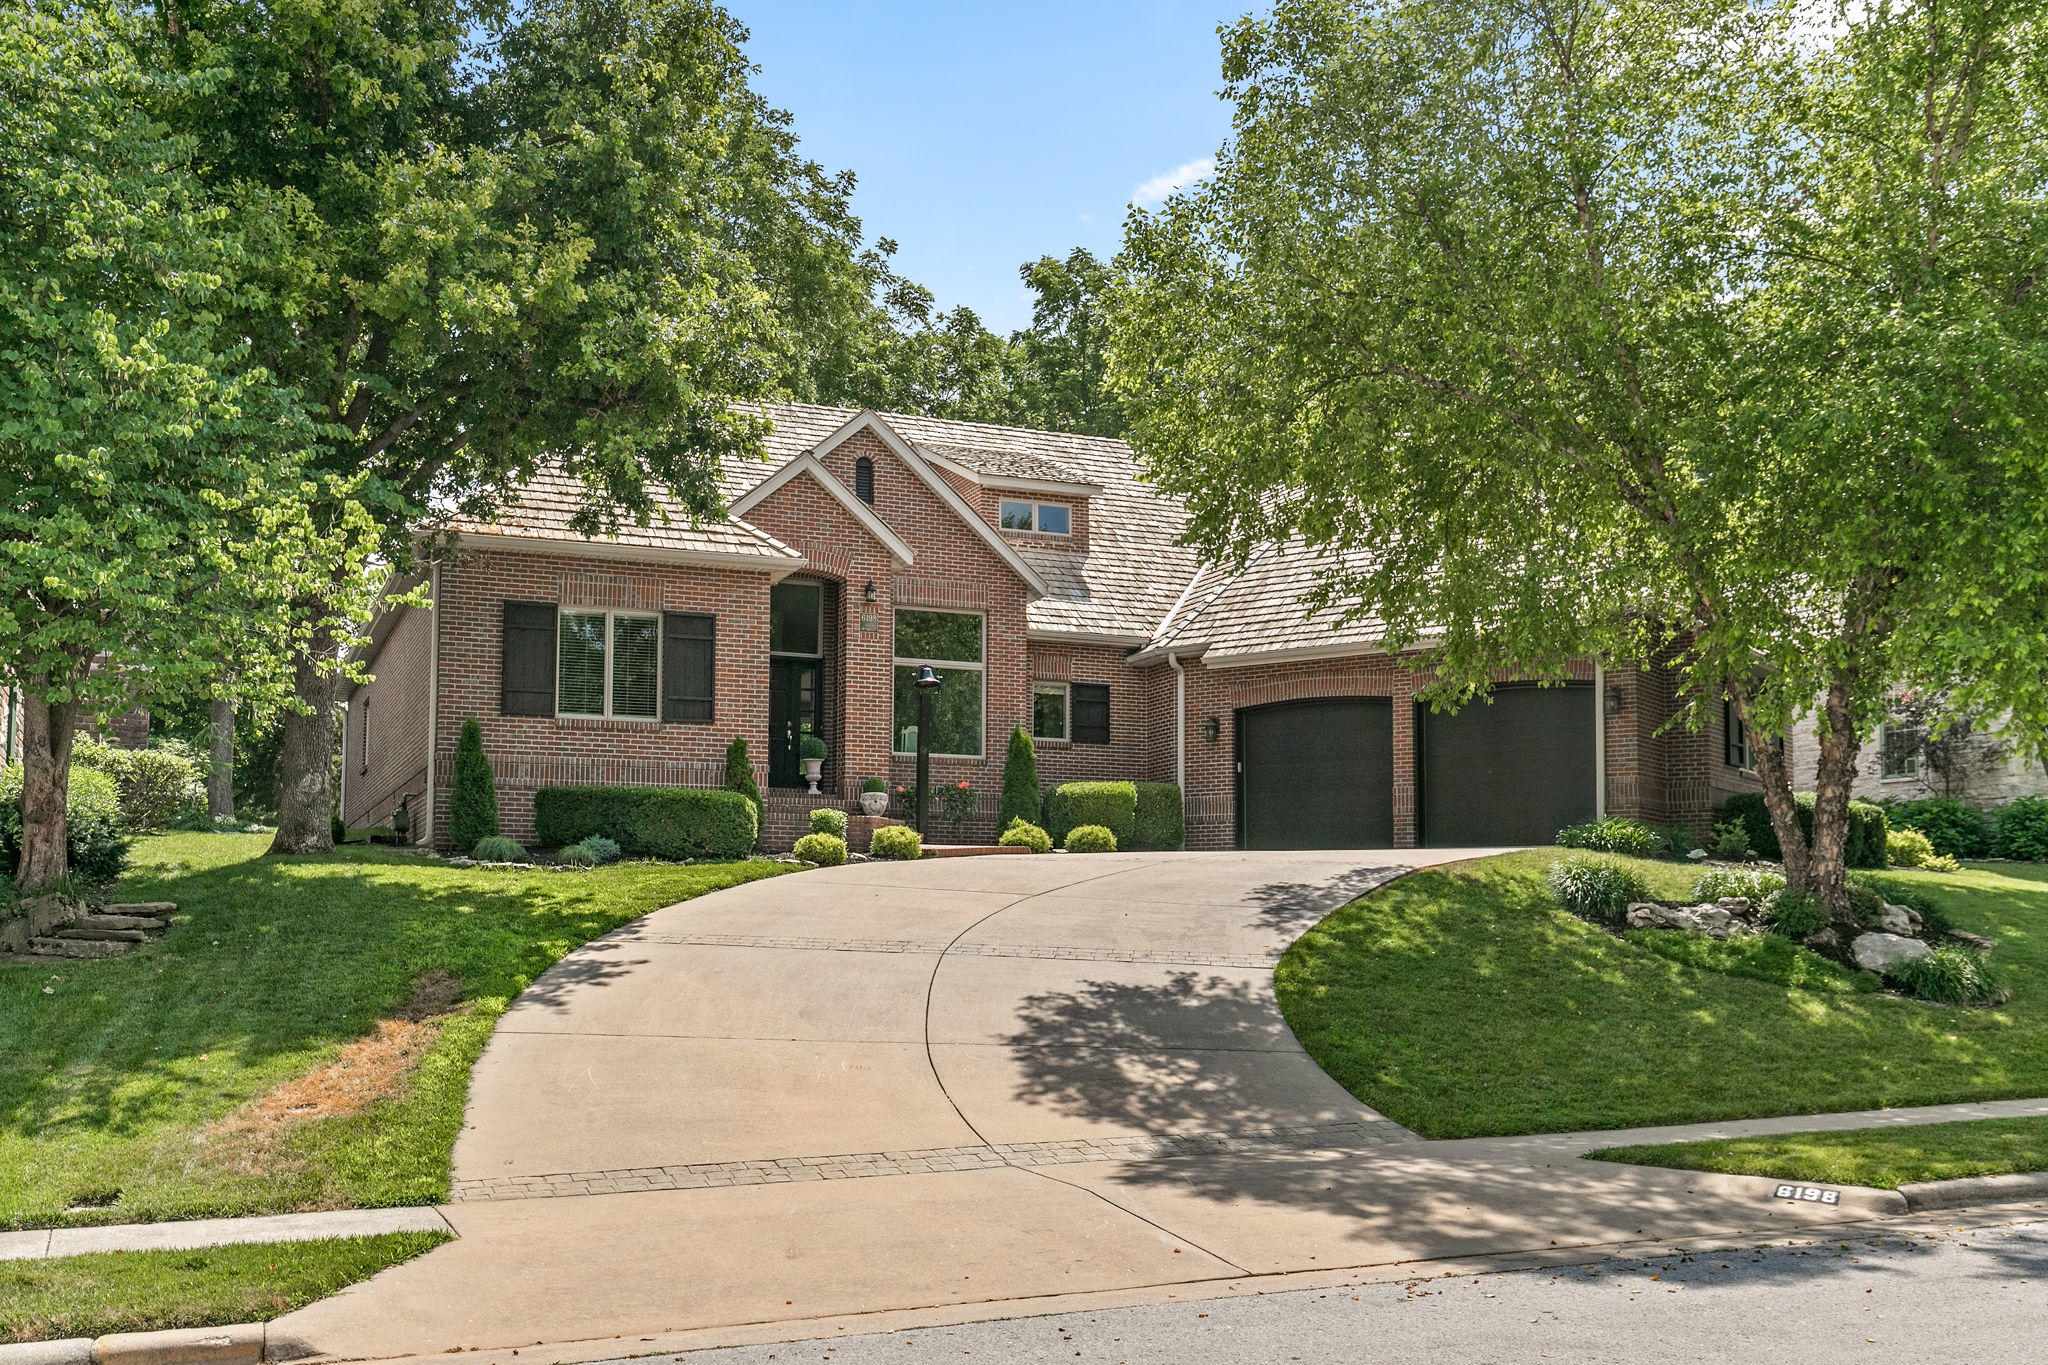 6198 South Riverglen Road Ozark, MO 65721